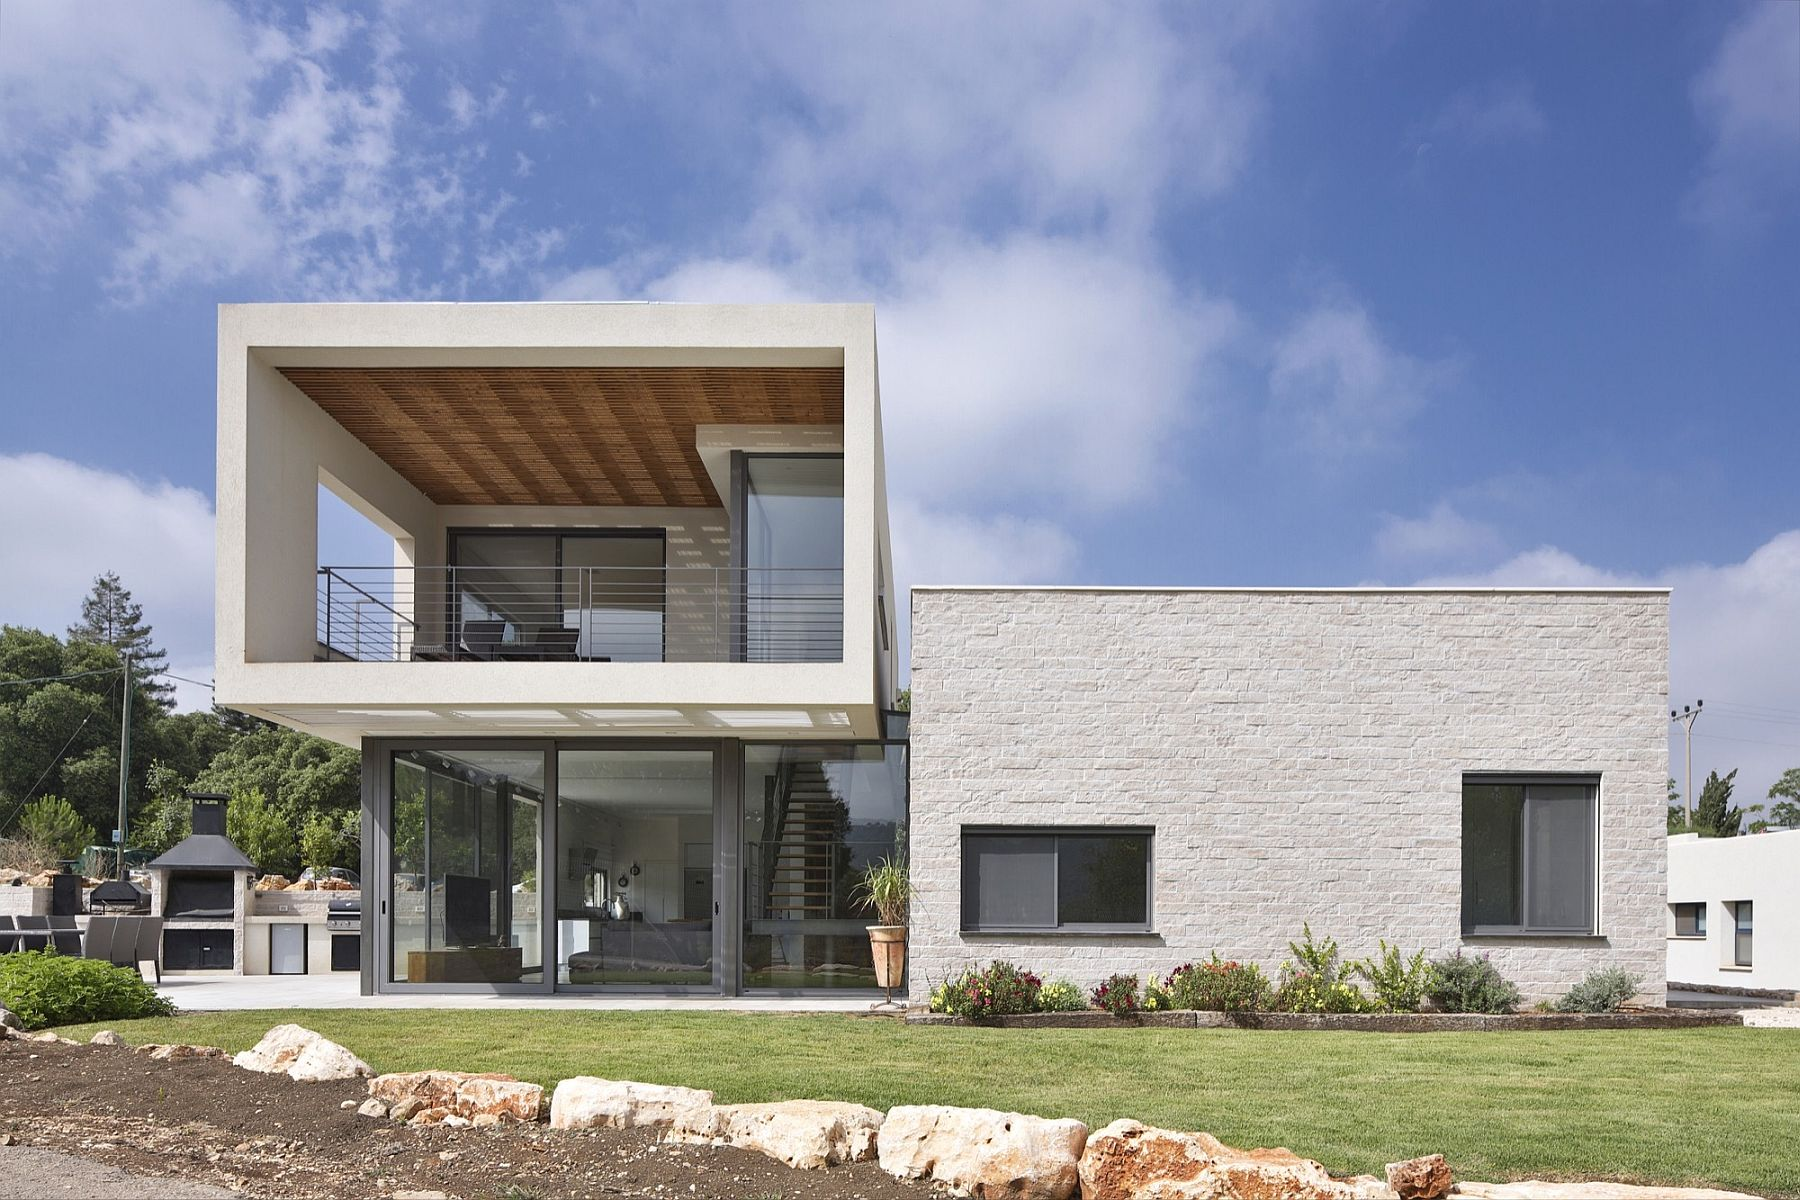 Rosenberg Golan and Ricky Home by SO Architecture in Israel Modern Home in Israel Puts Open Living Spaces at the Forefront